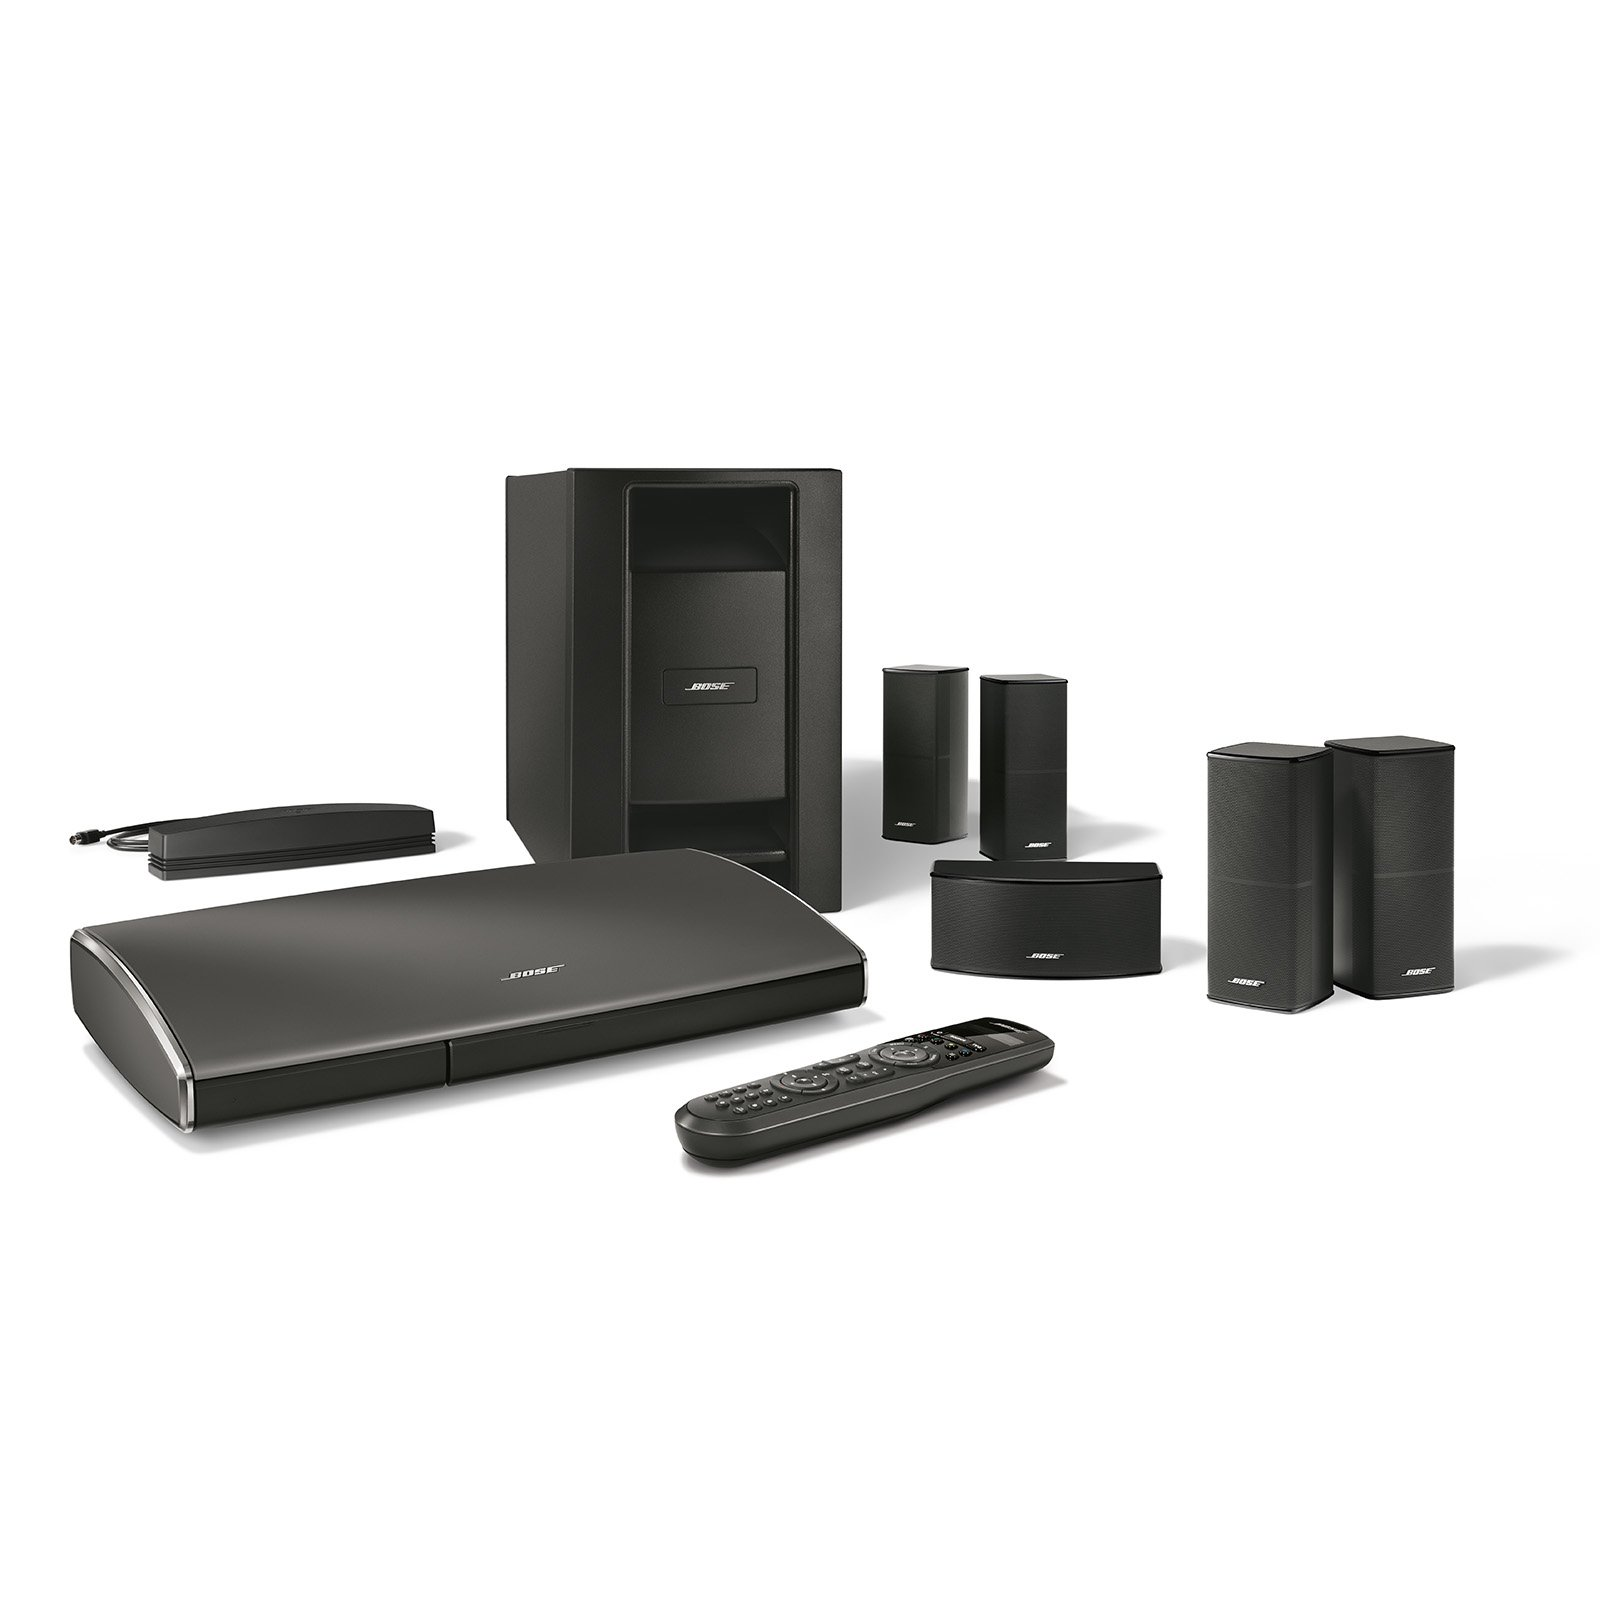 Bose Lifestyle SoundTouch 535 Entertainment System